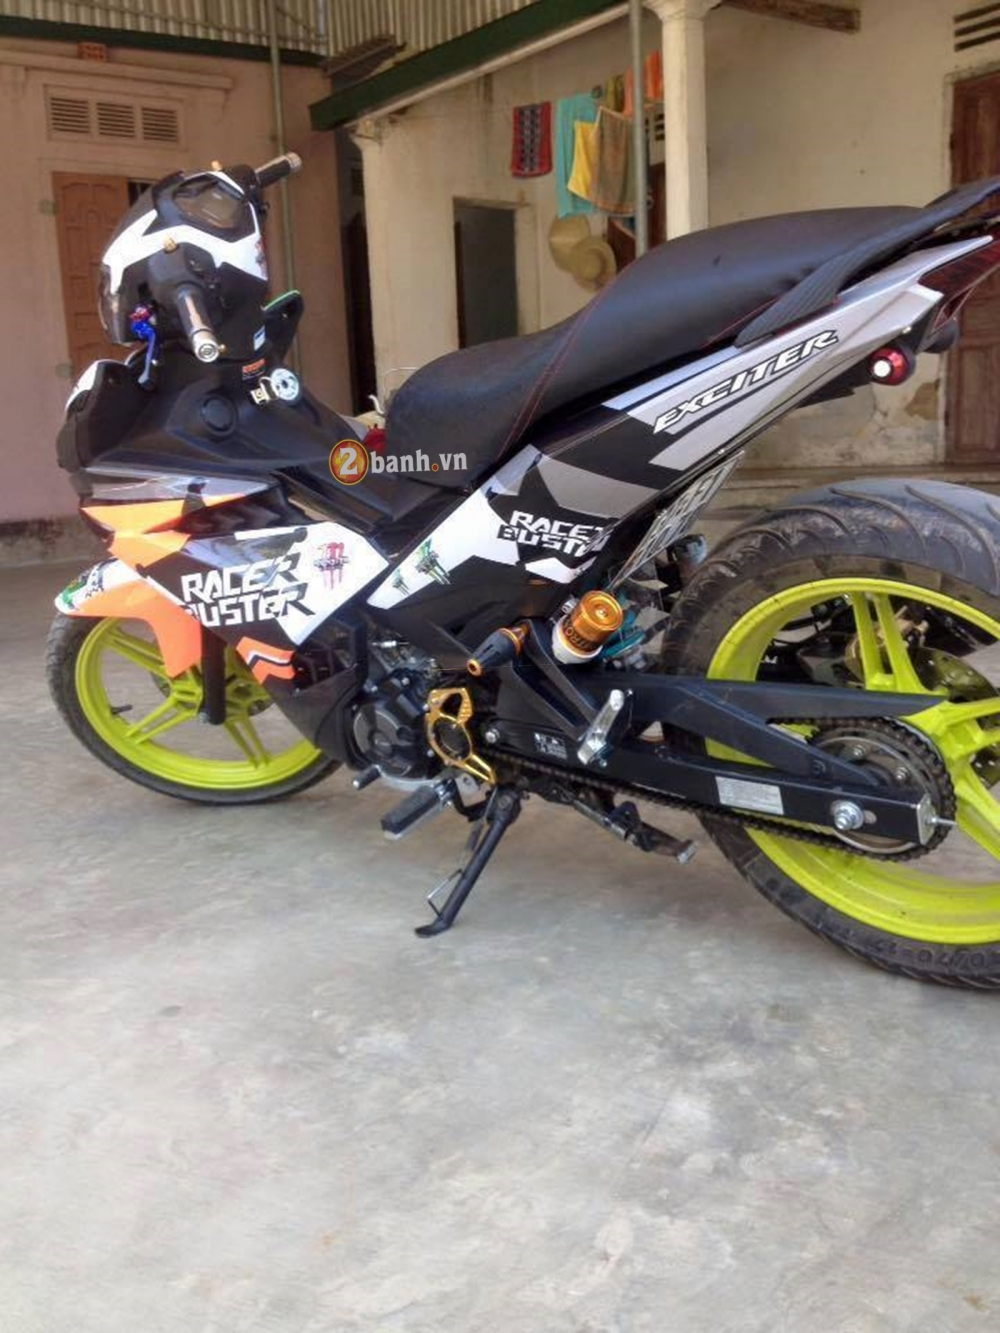 Tem dau Racer Buster cho Exciter150 - 2